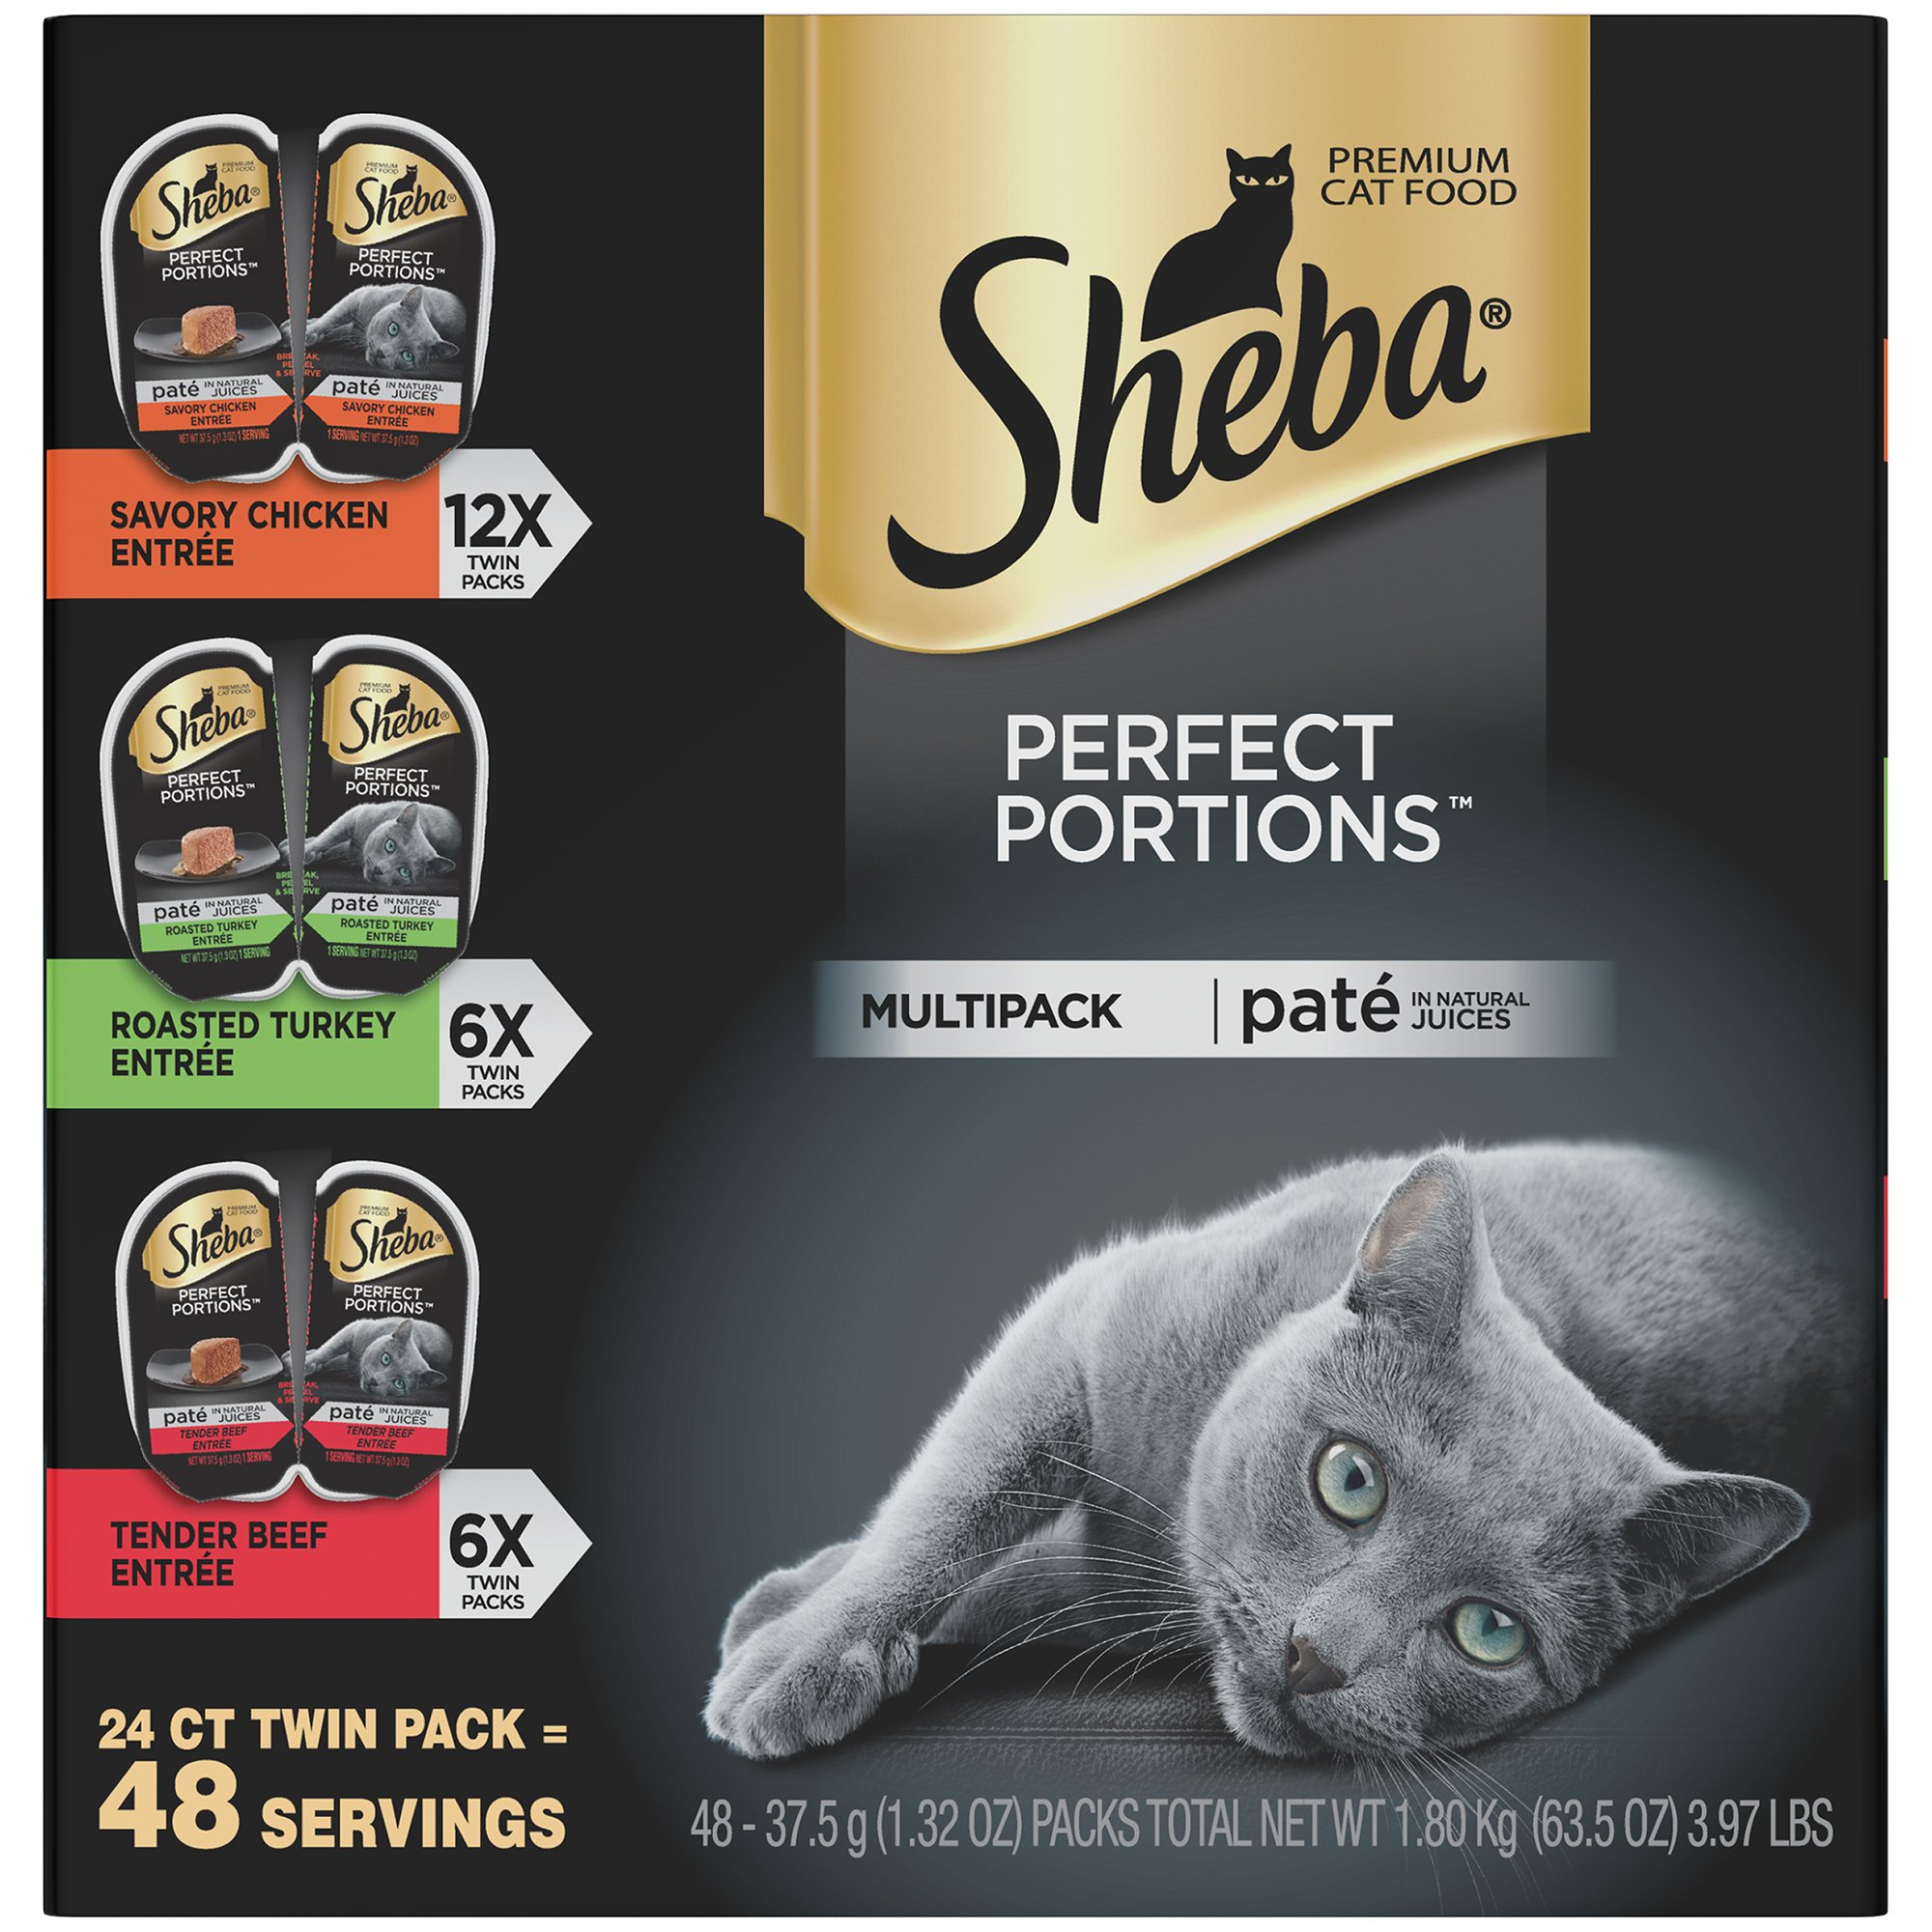 Sheba Perfect Portions Pate Wet Cat Food Trays product image